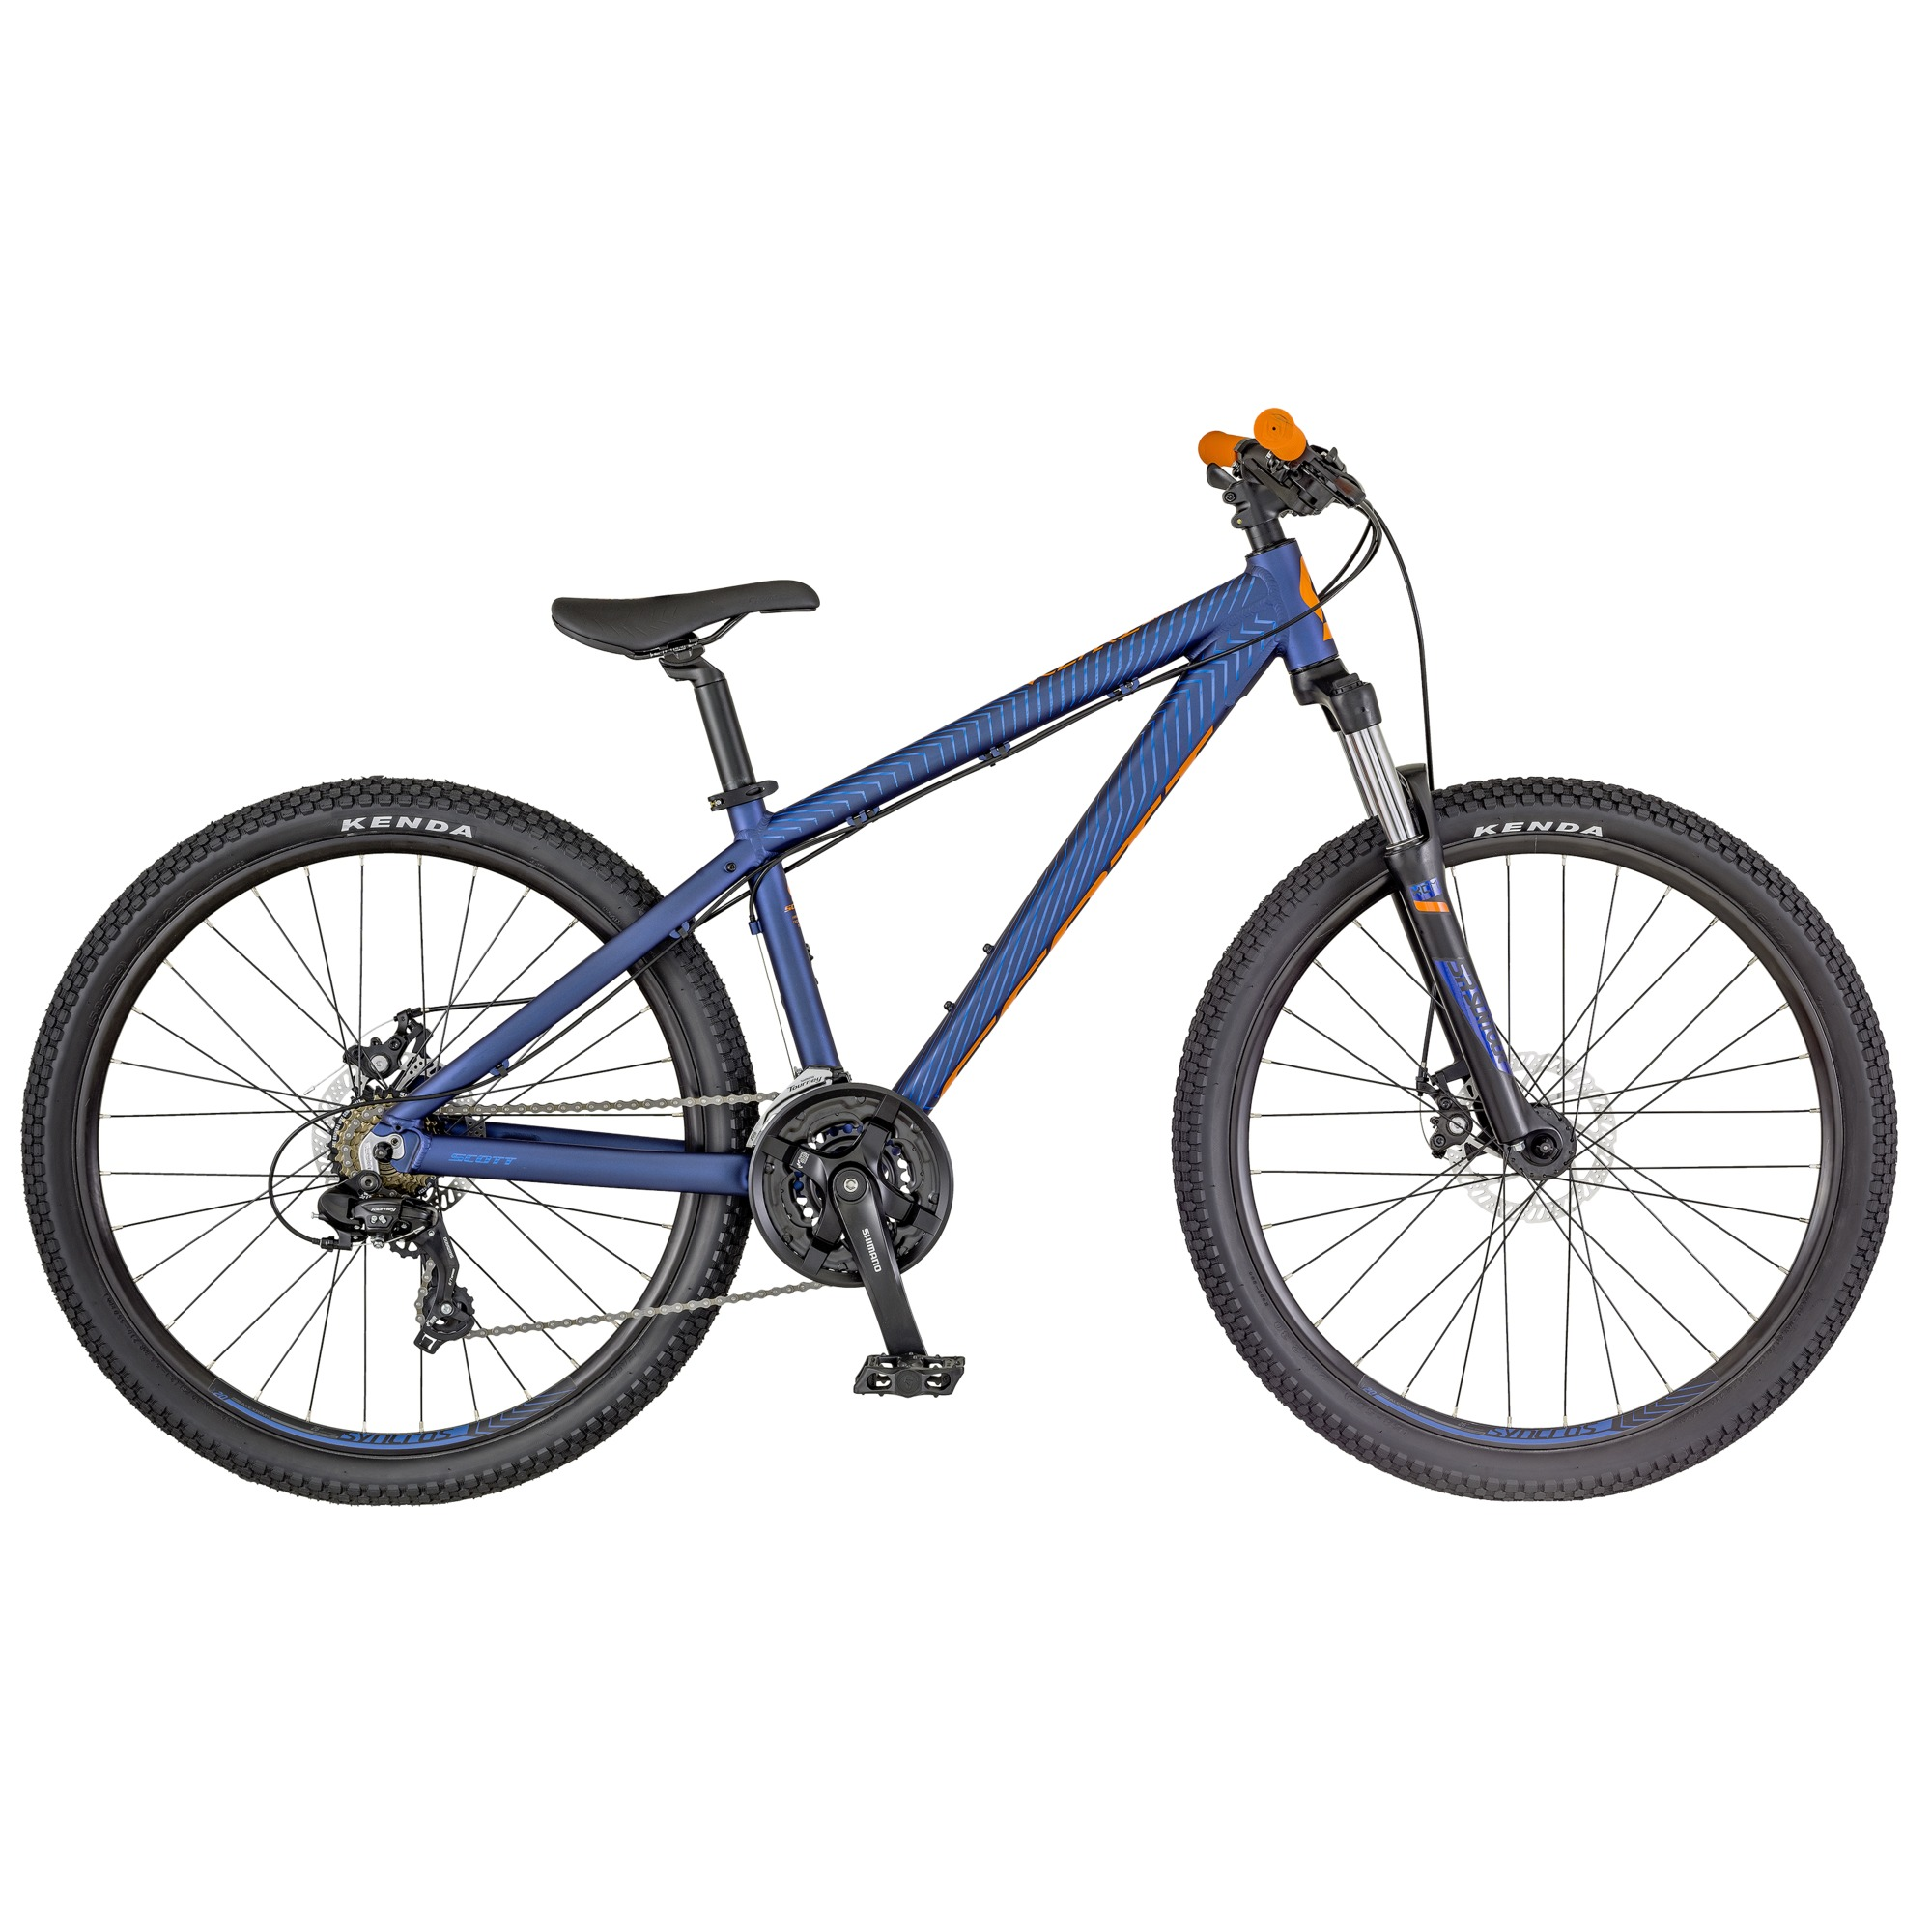 SCOTT Voltage YZ 20 Bike XS - SCOTT Voltage YZ 20 Bike XS